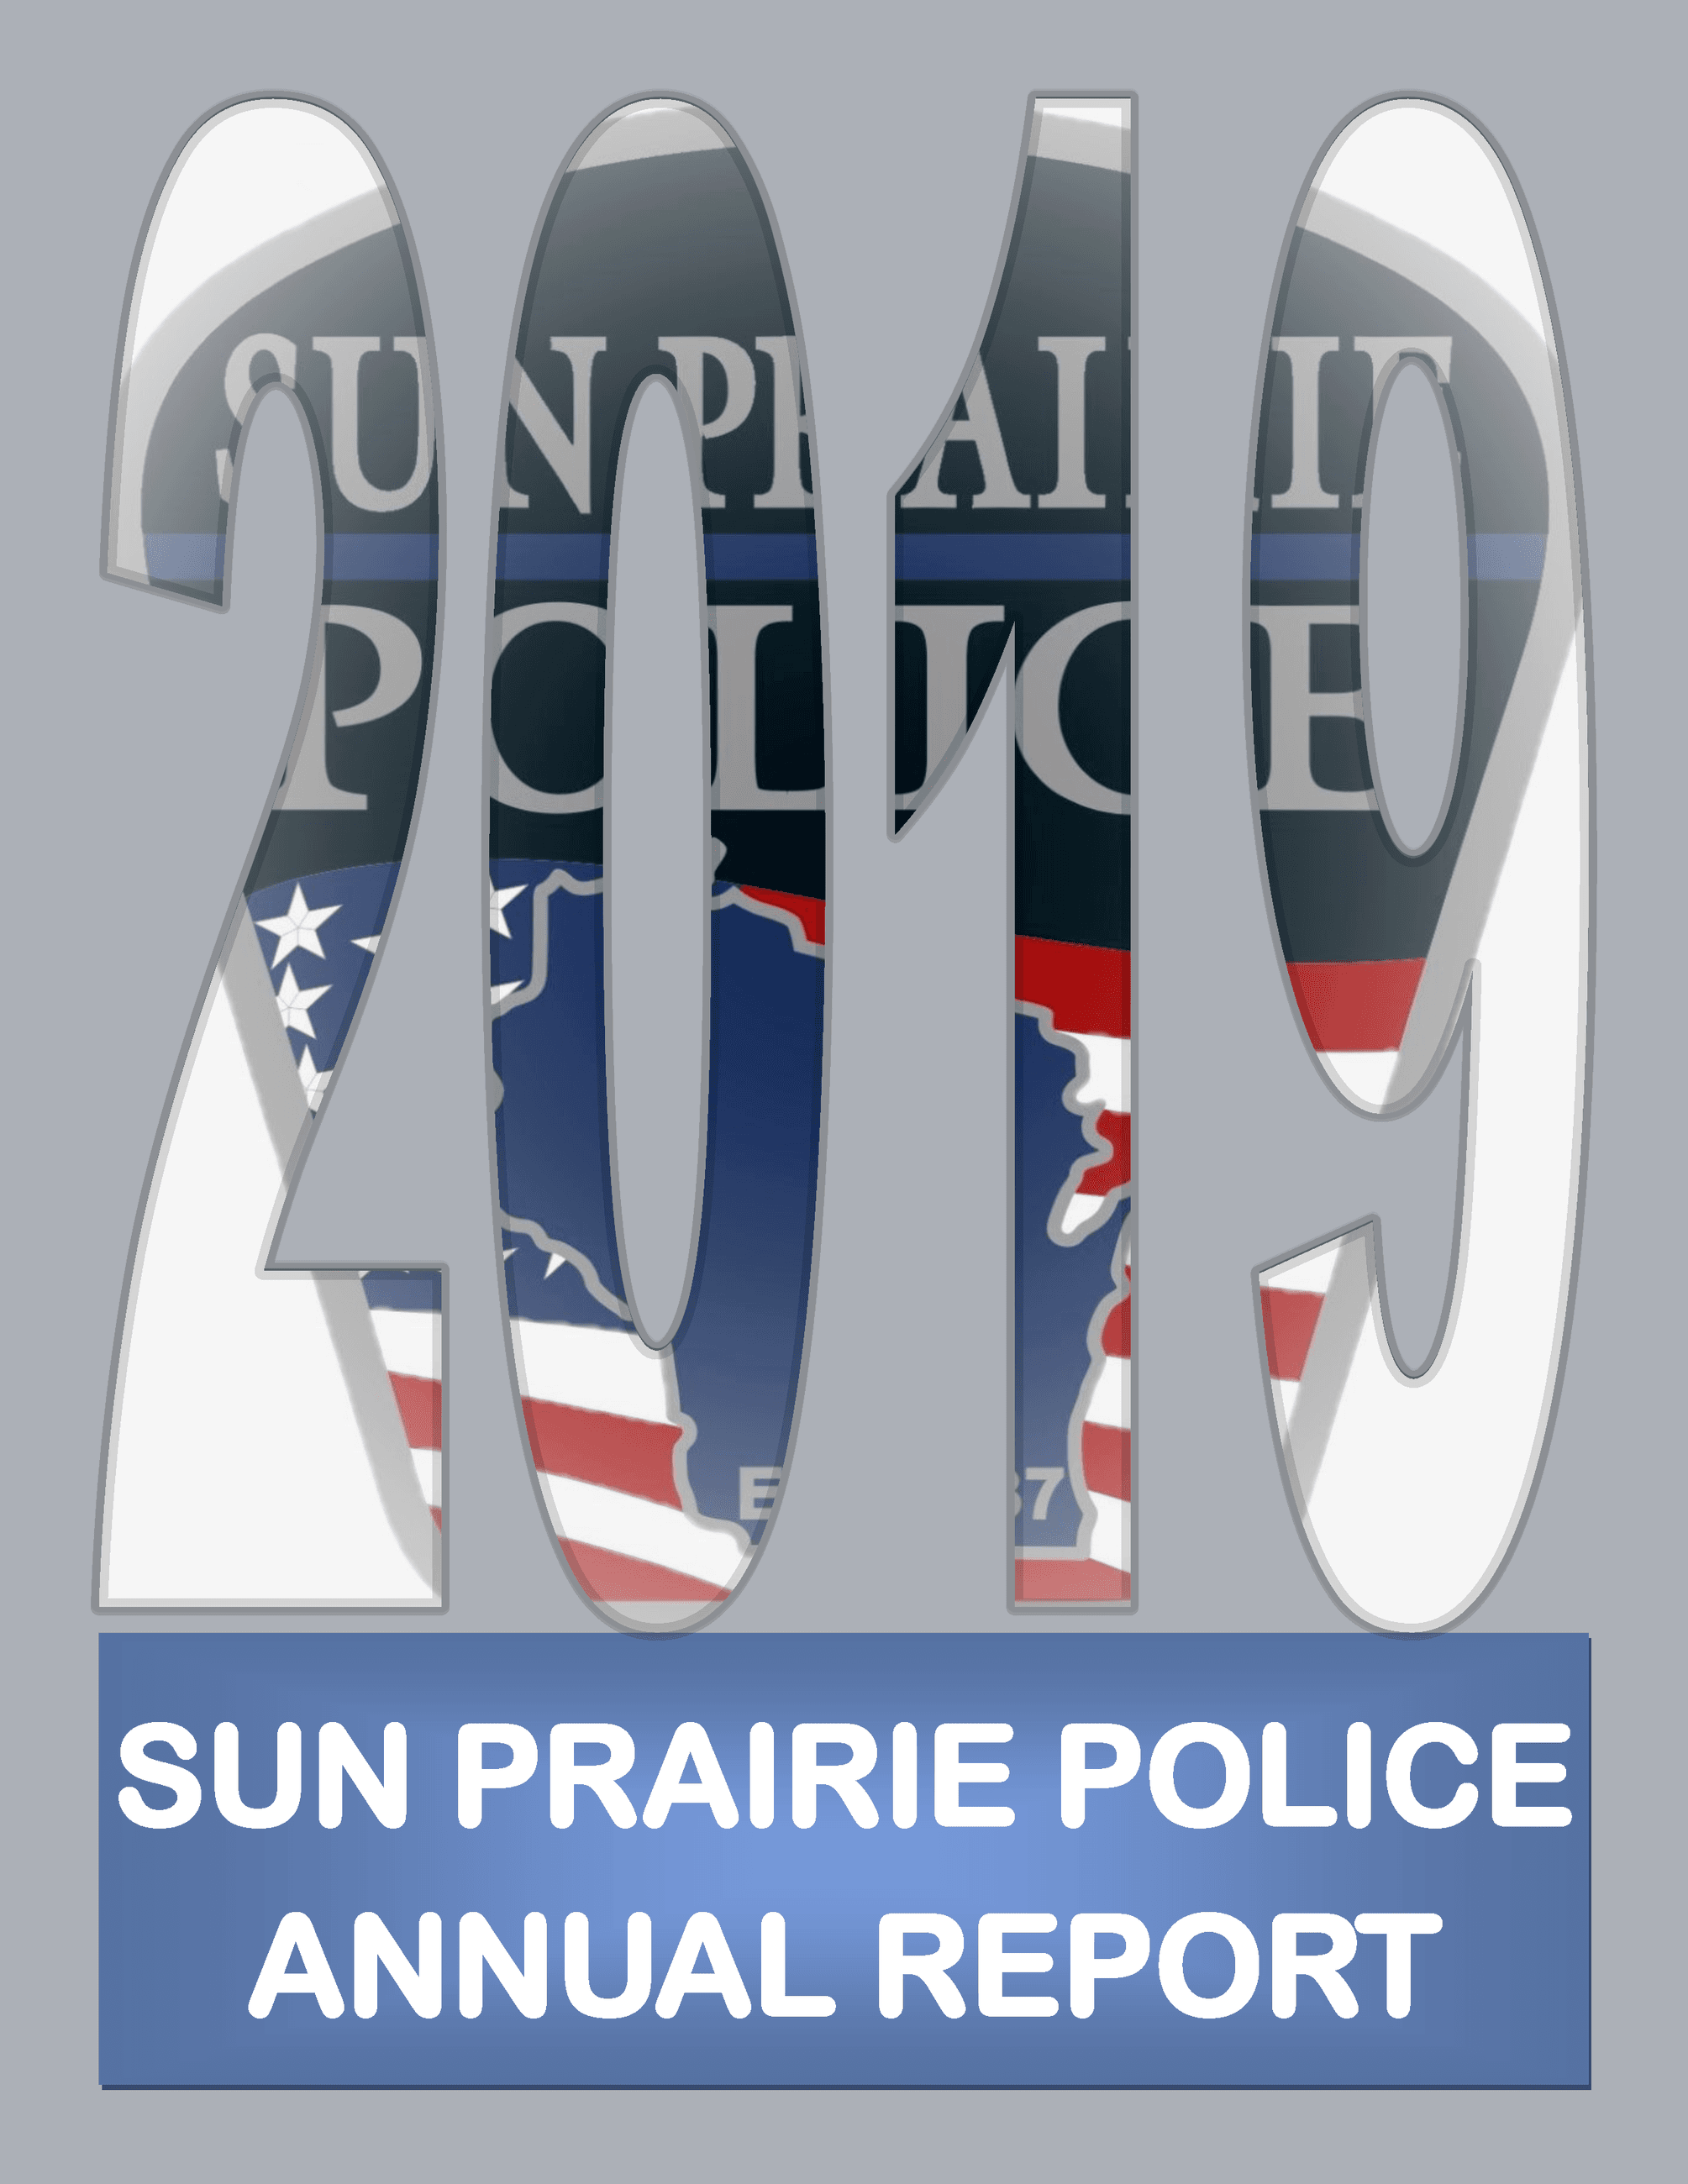 2019 Sun Prairie Police Annual Report Image